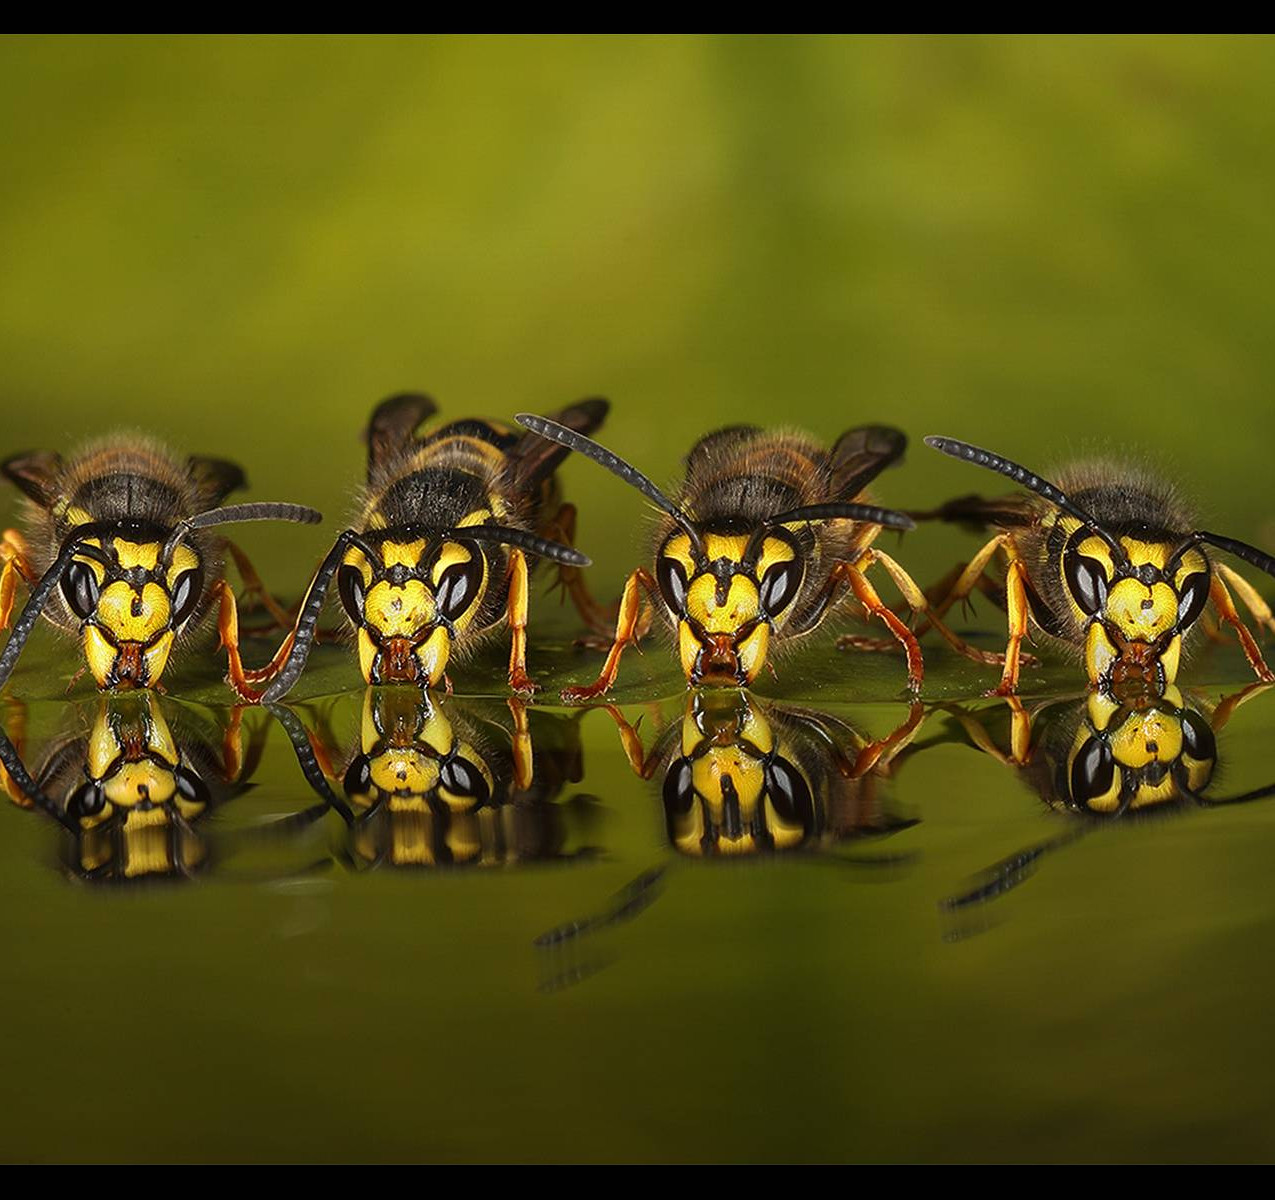 8338_Roy Rimmer_Four Wasps Drinking